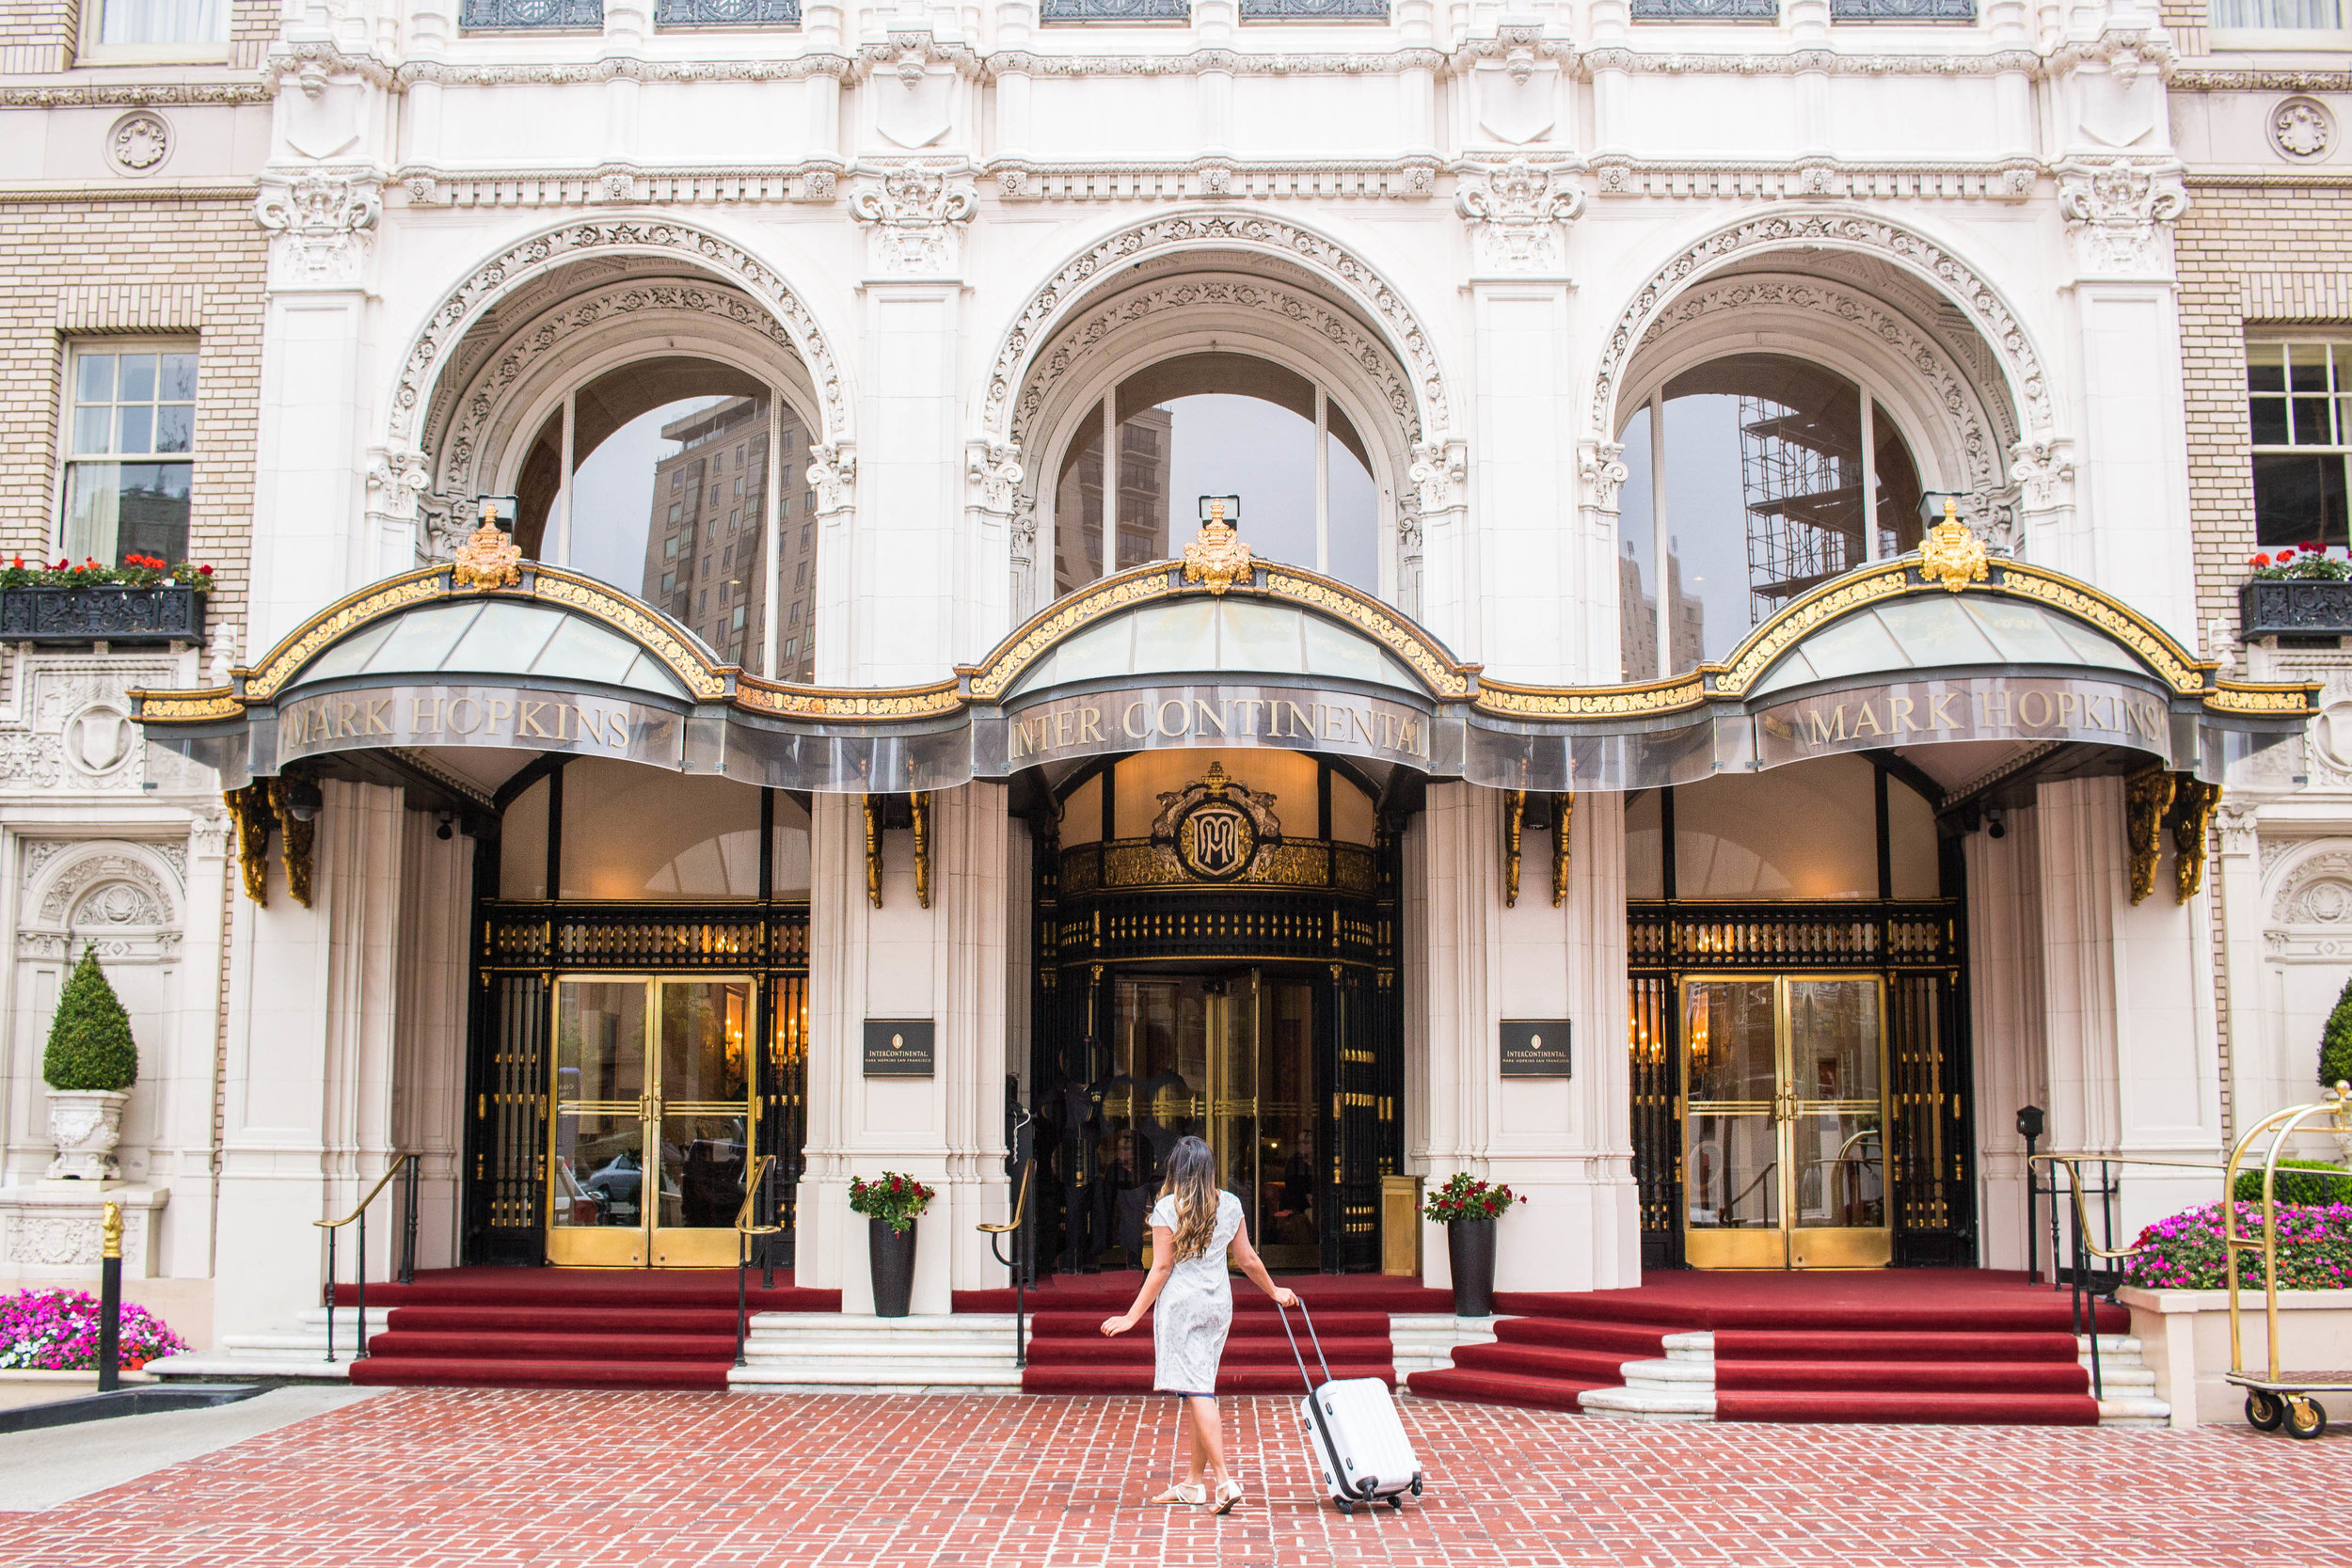 Luxury Hotel Review: InterContinental Mark Hopkins San Francisco